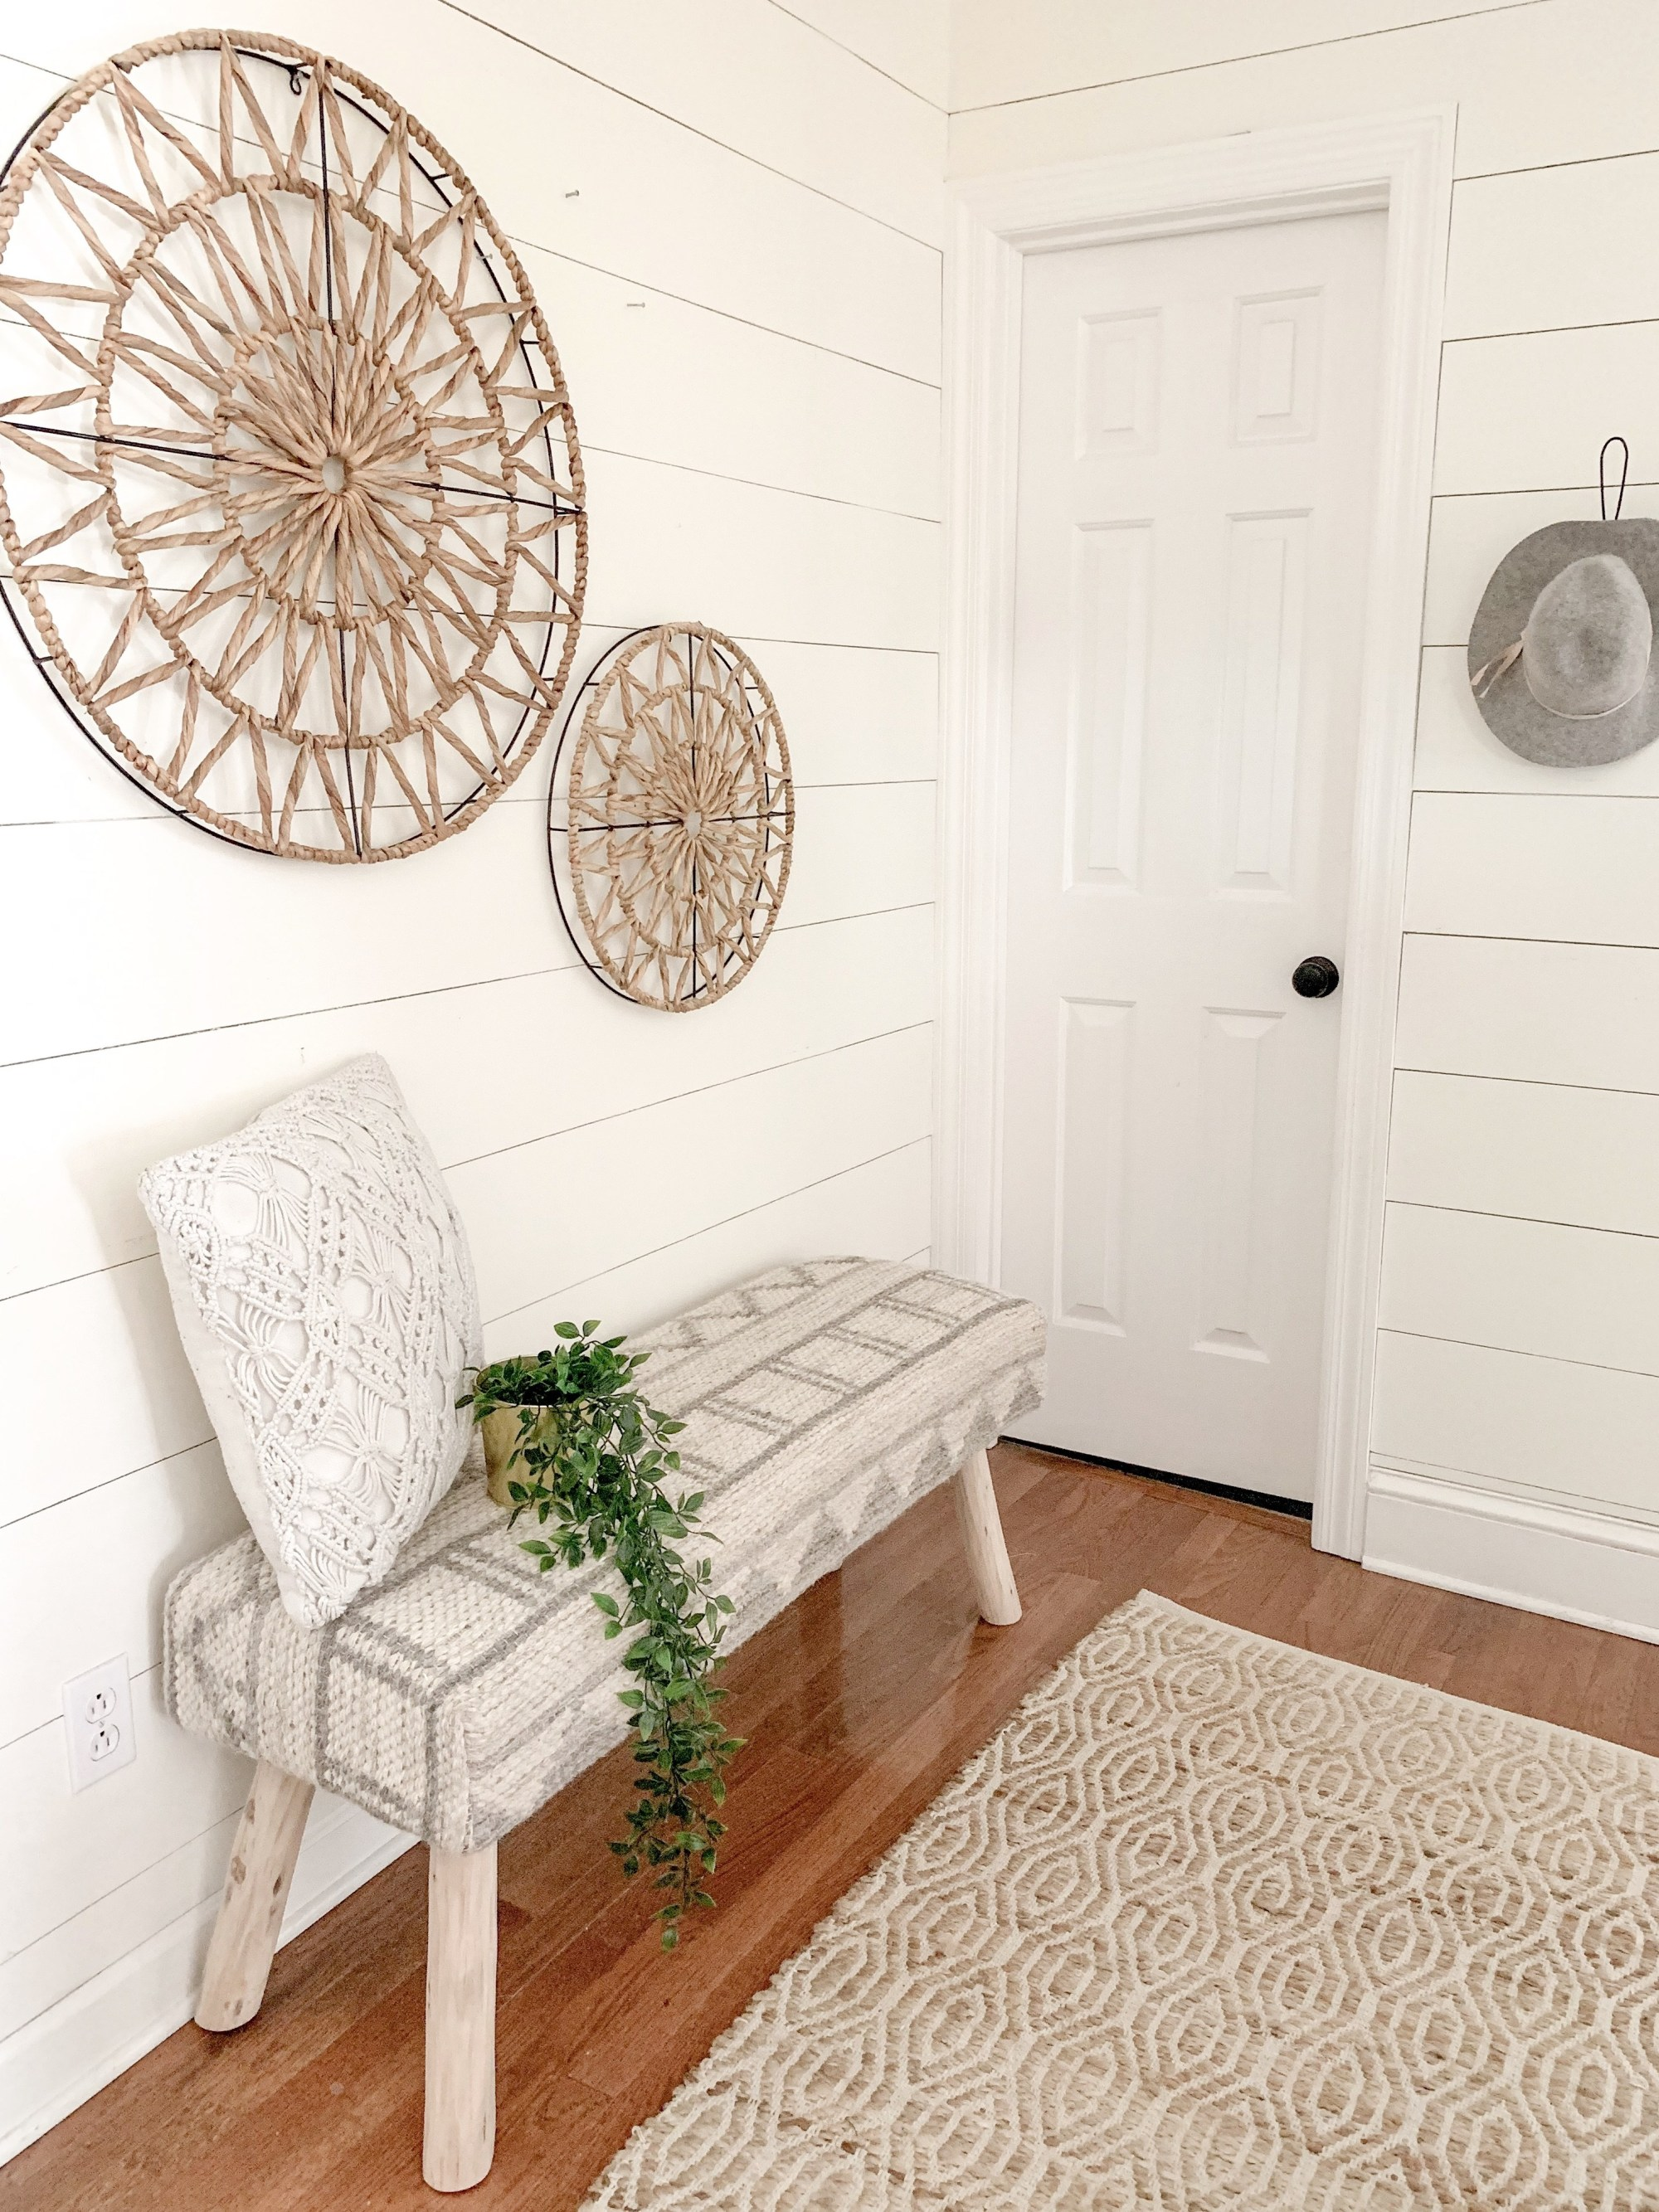 Kirkland's - Adding Texture to Your Space with Bless This Nest